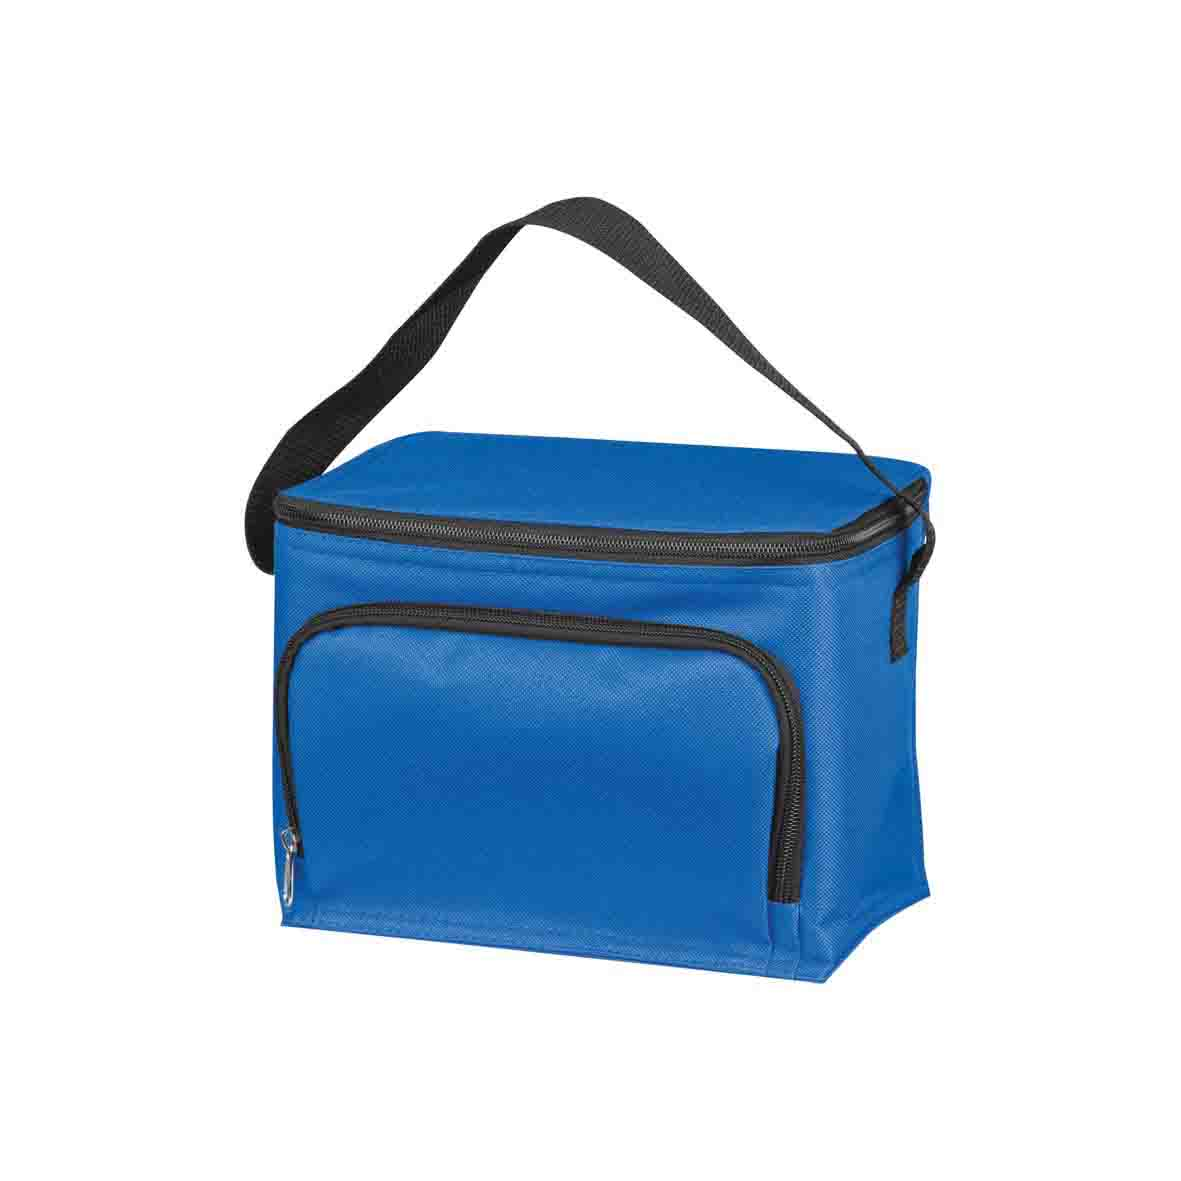 210D polyester cooler bag - Blue mac-6832104